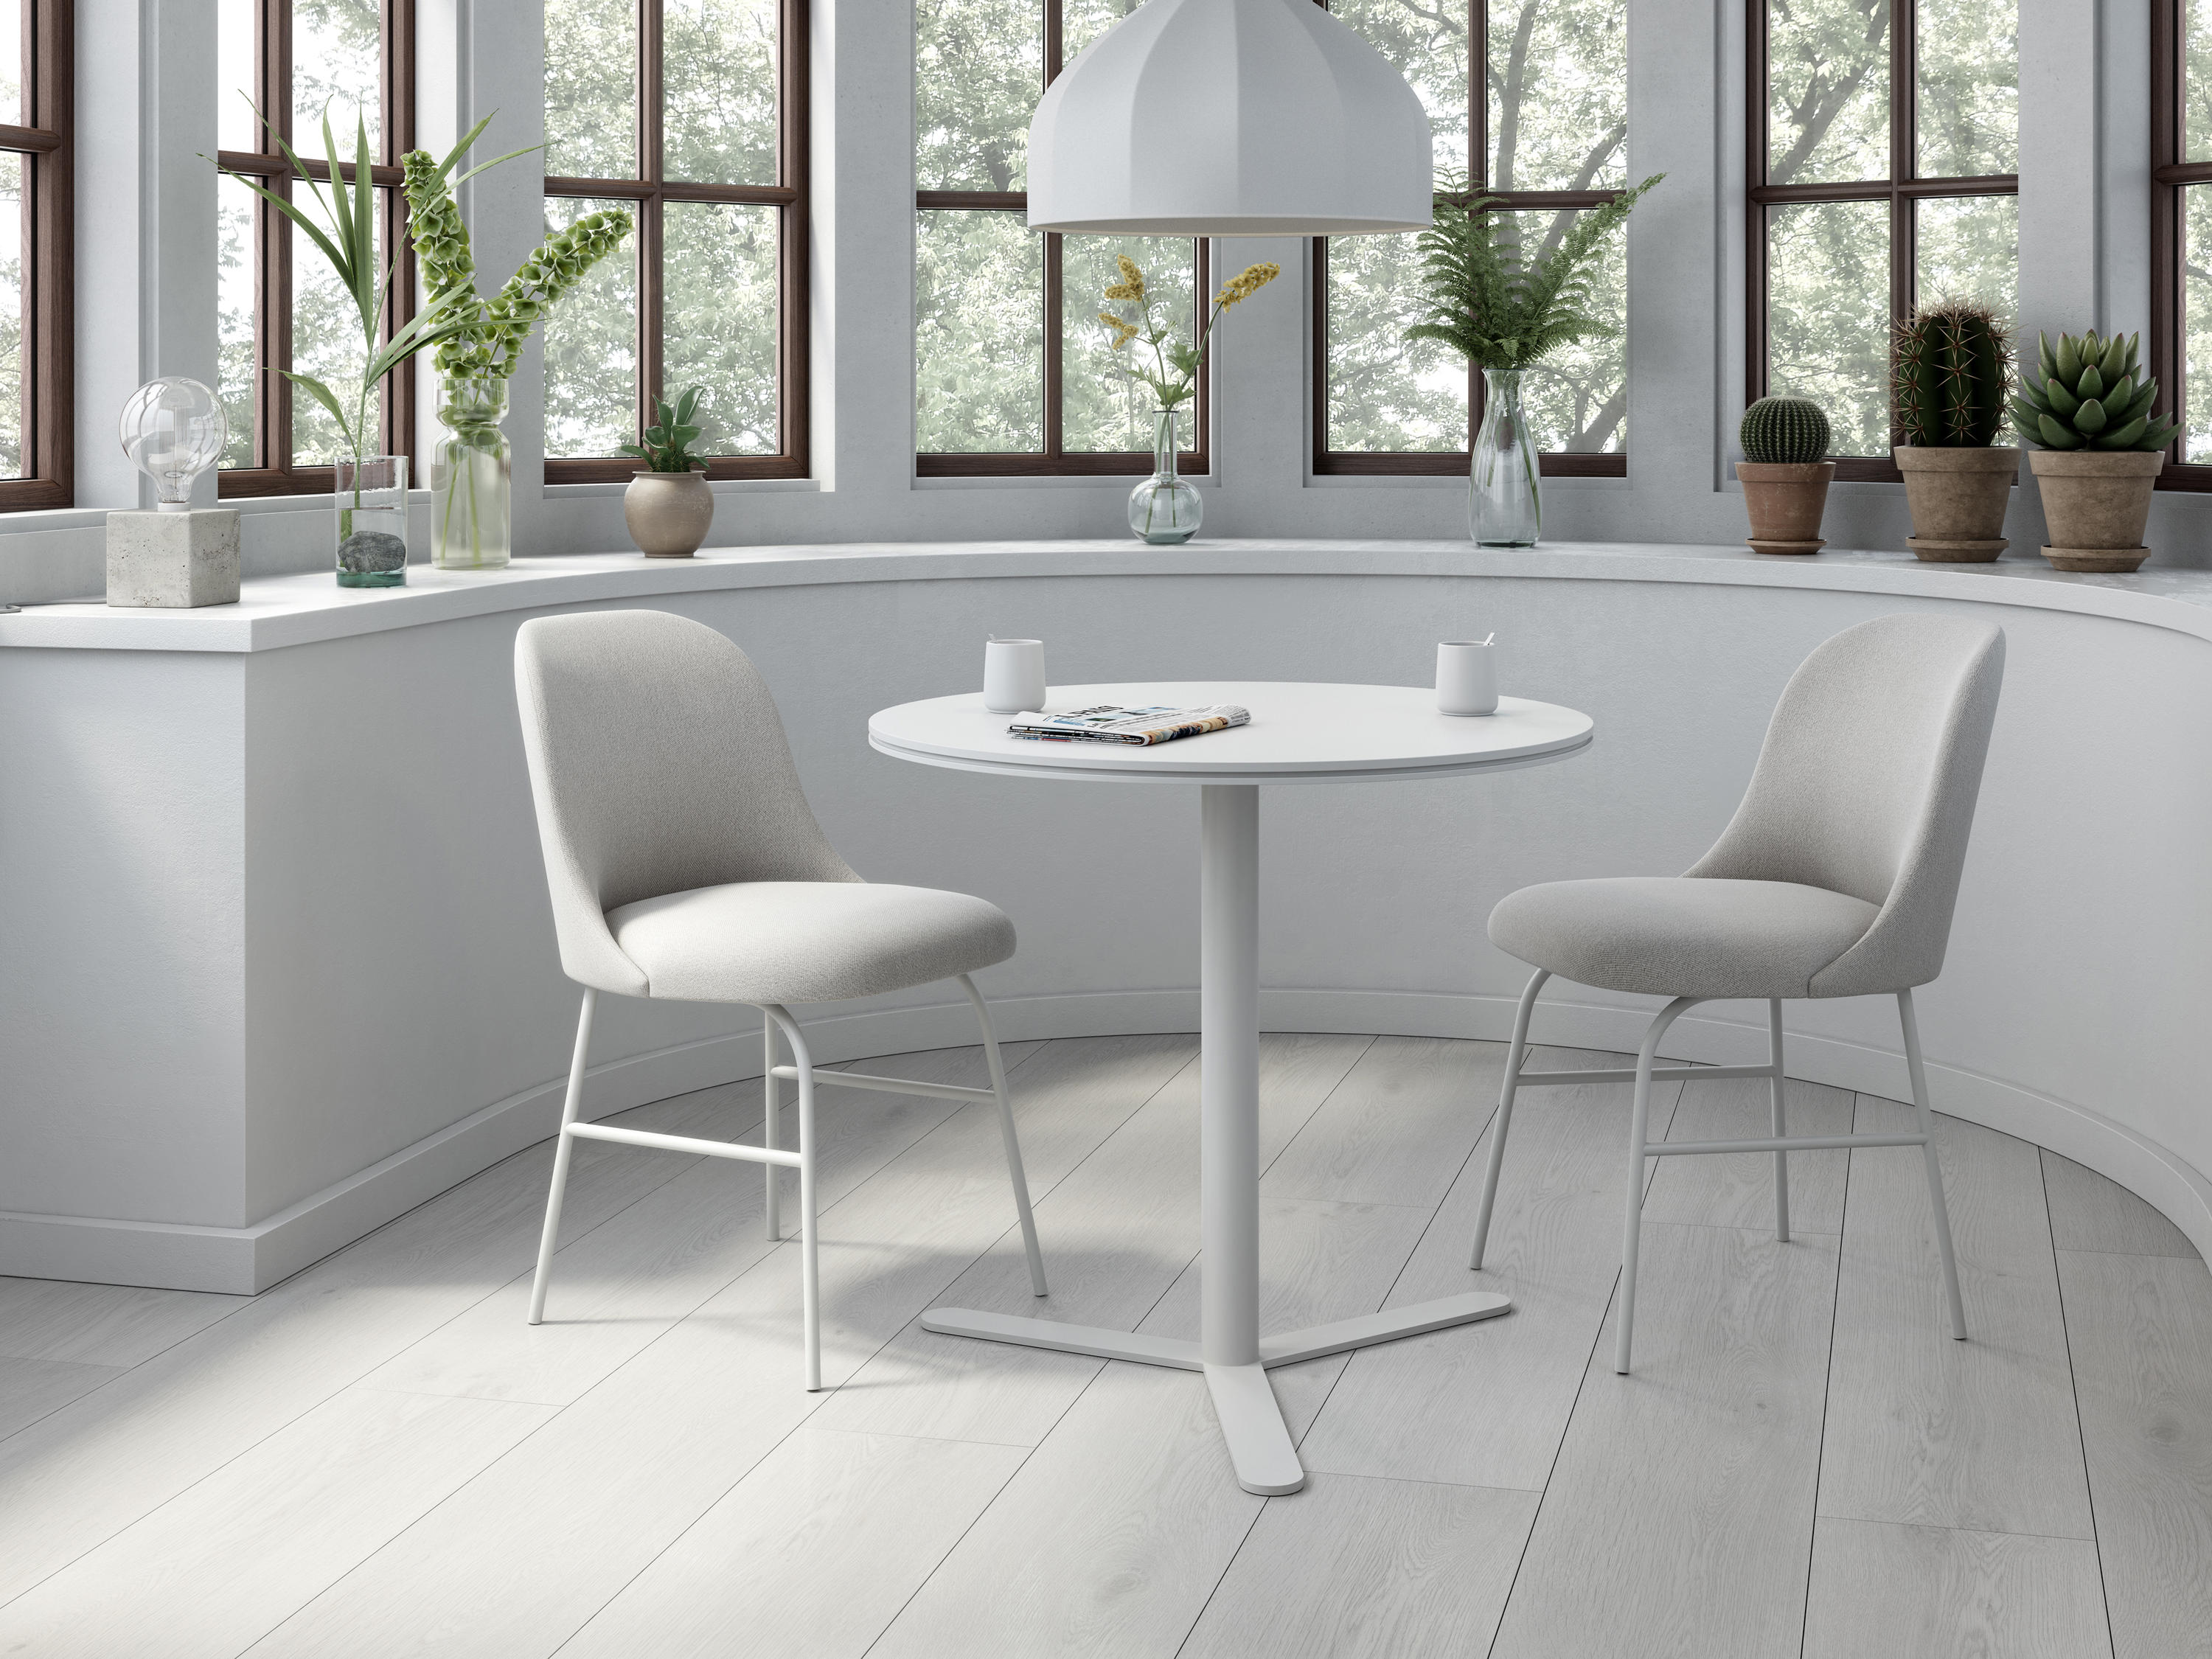 Aleta Chair Chairs From Viccarbe Architonic